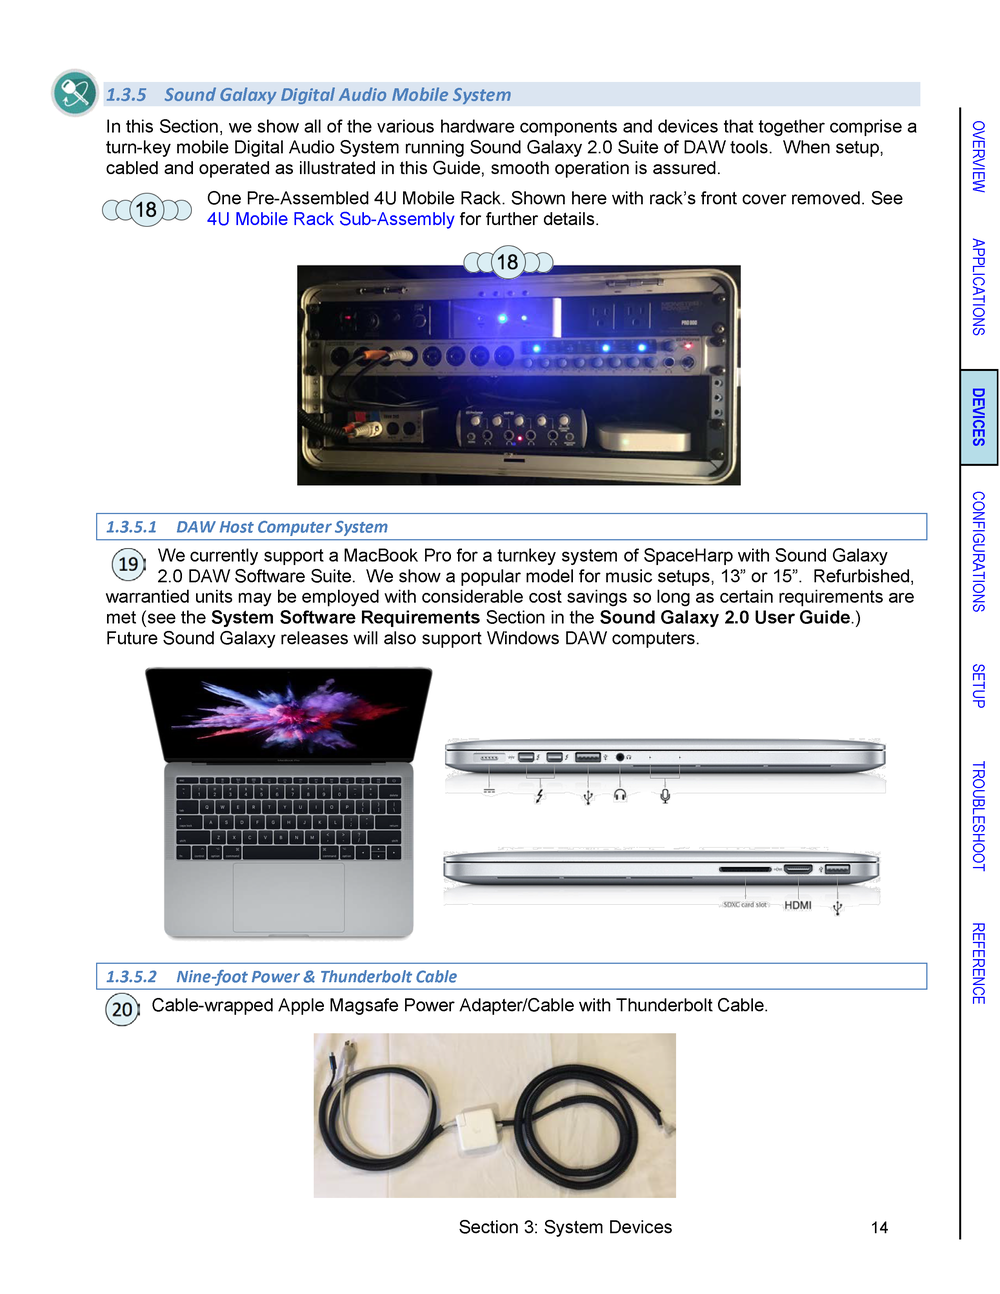 SpaceHarp_Systems_User_Guide_Oct-9th-2017_released_Page_14.png